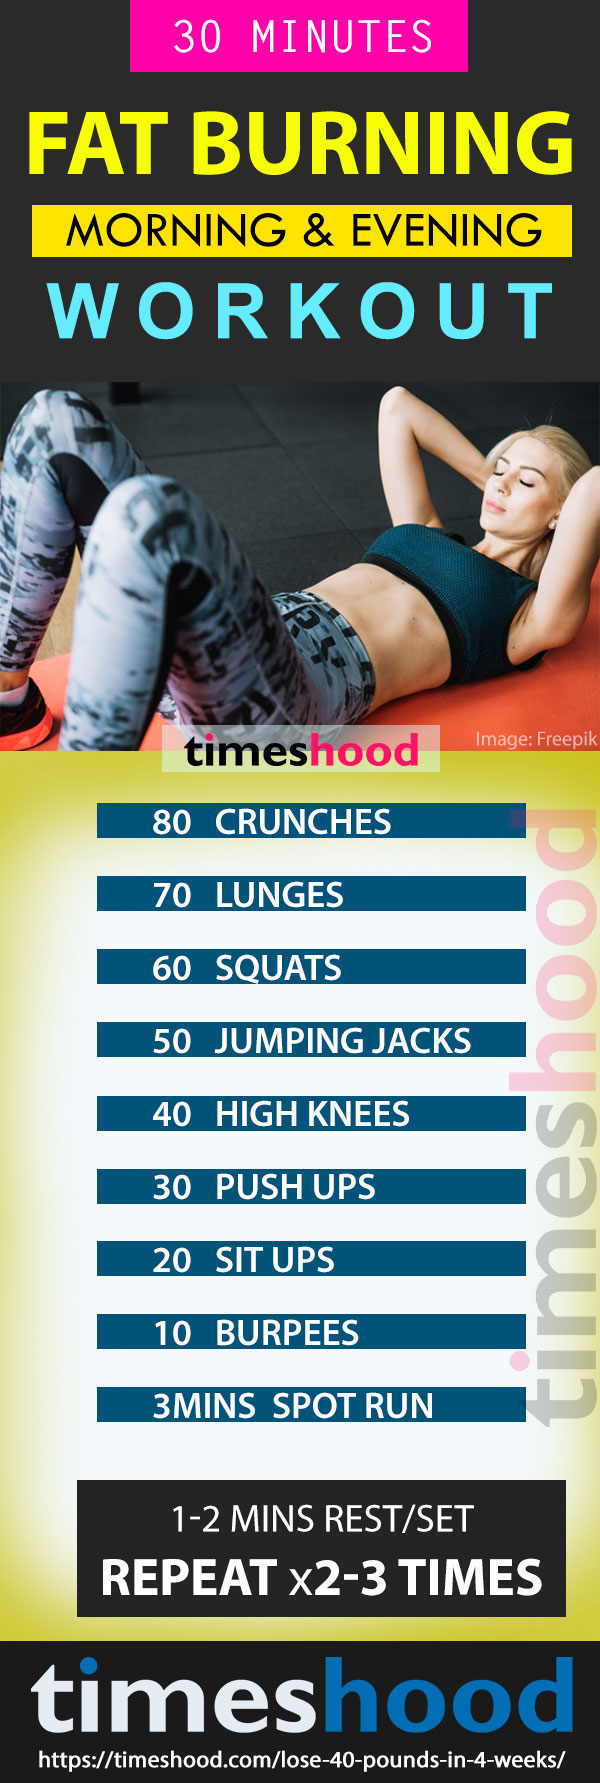 12-Hour Plan to Lose Up To 12 Pounds in 12 Weeks - TIMESHOOD